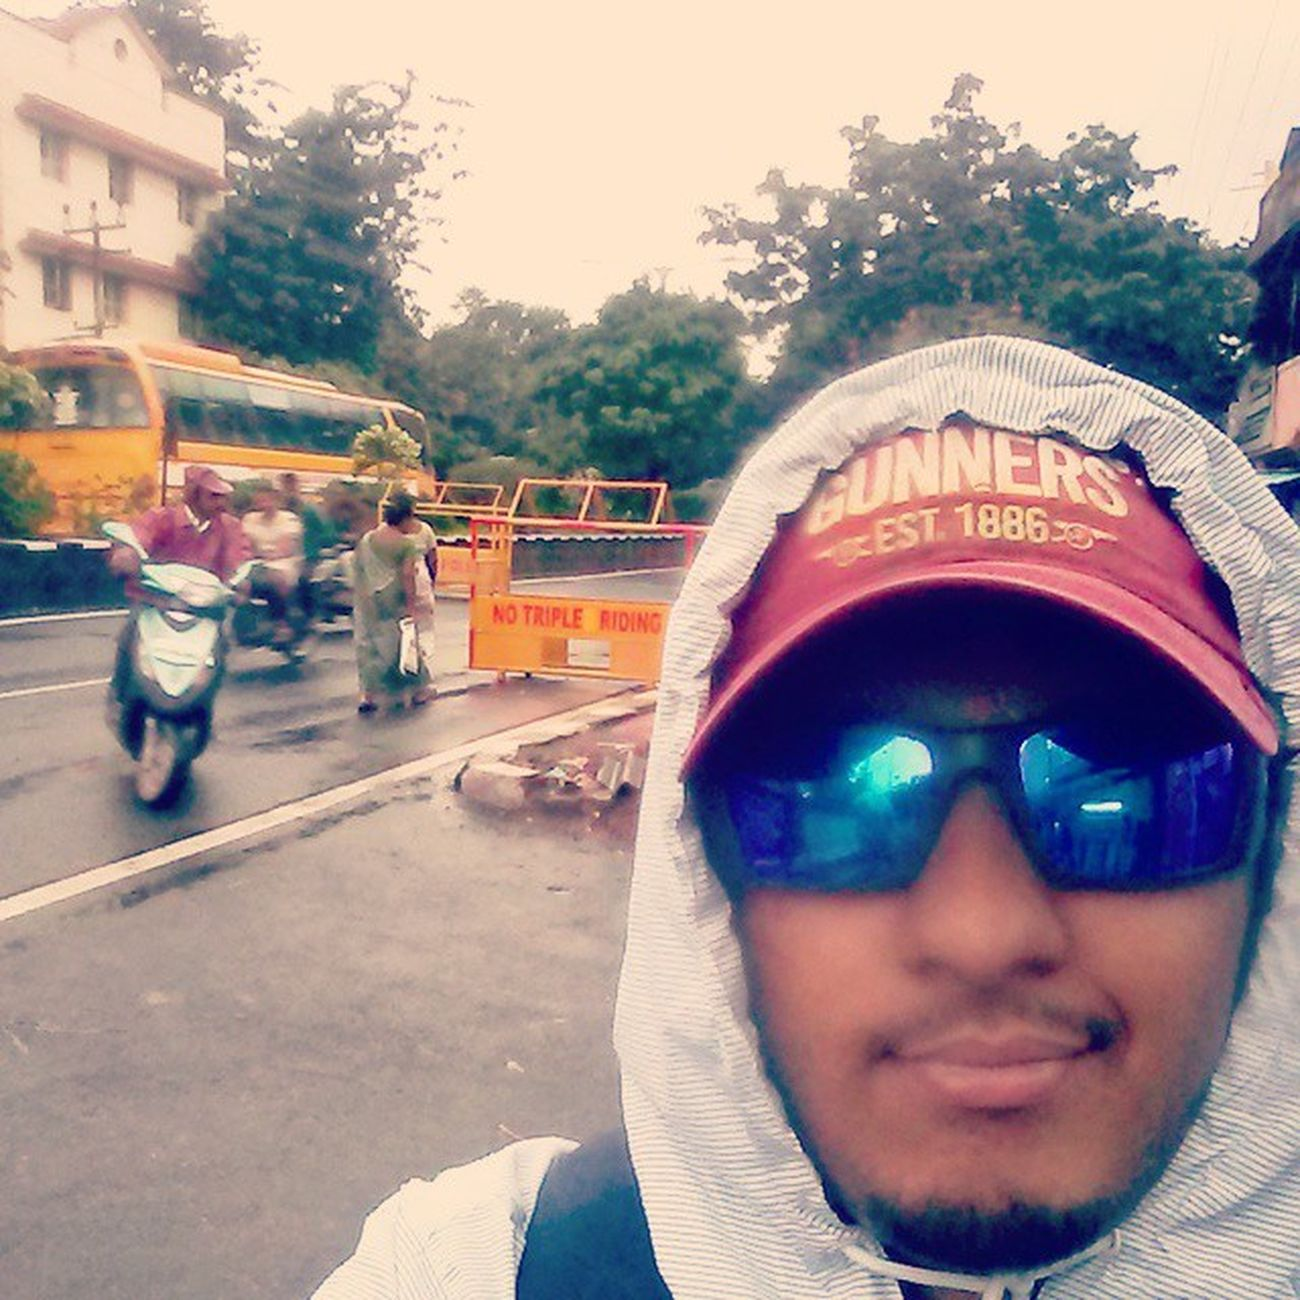 Tea amidst the Rain Pondicherry Monsoon Teatime Evenings Friends Mondays Adidas Oakley Wearethebest F4F Followme Food Instamood Foodie Selfie On the roads Traffic Bestfriend Medicine Lungs Goggles